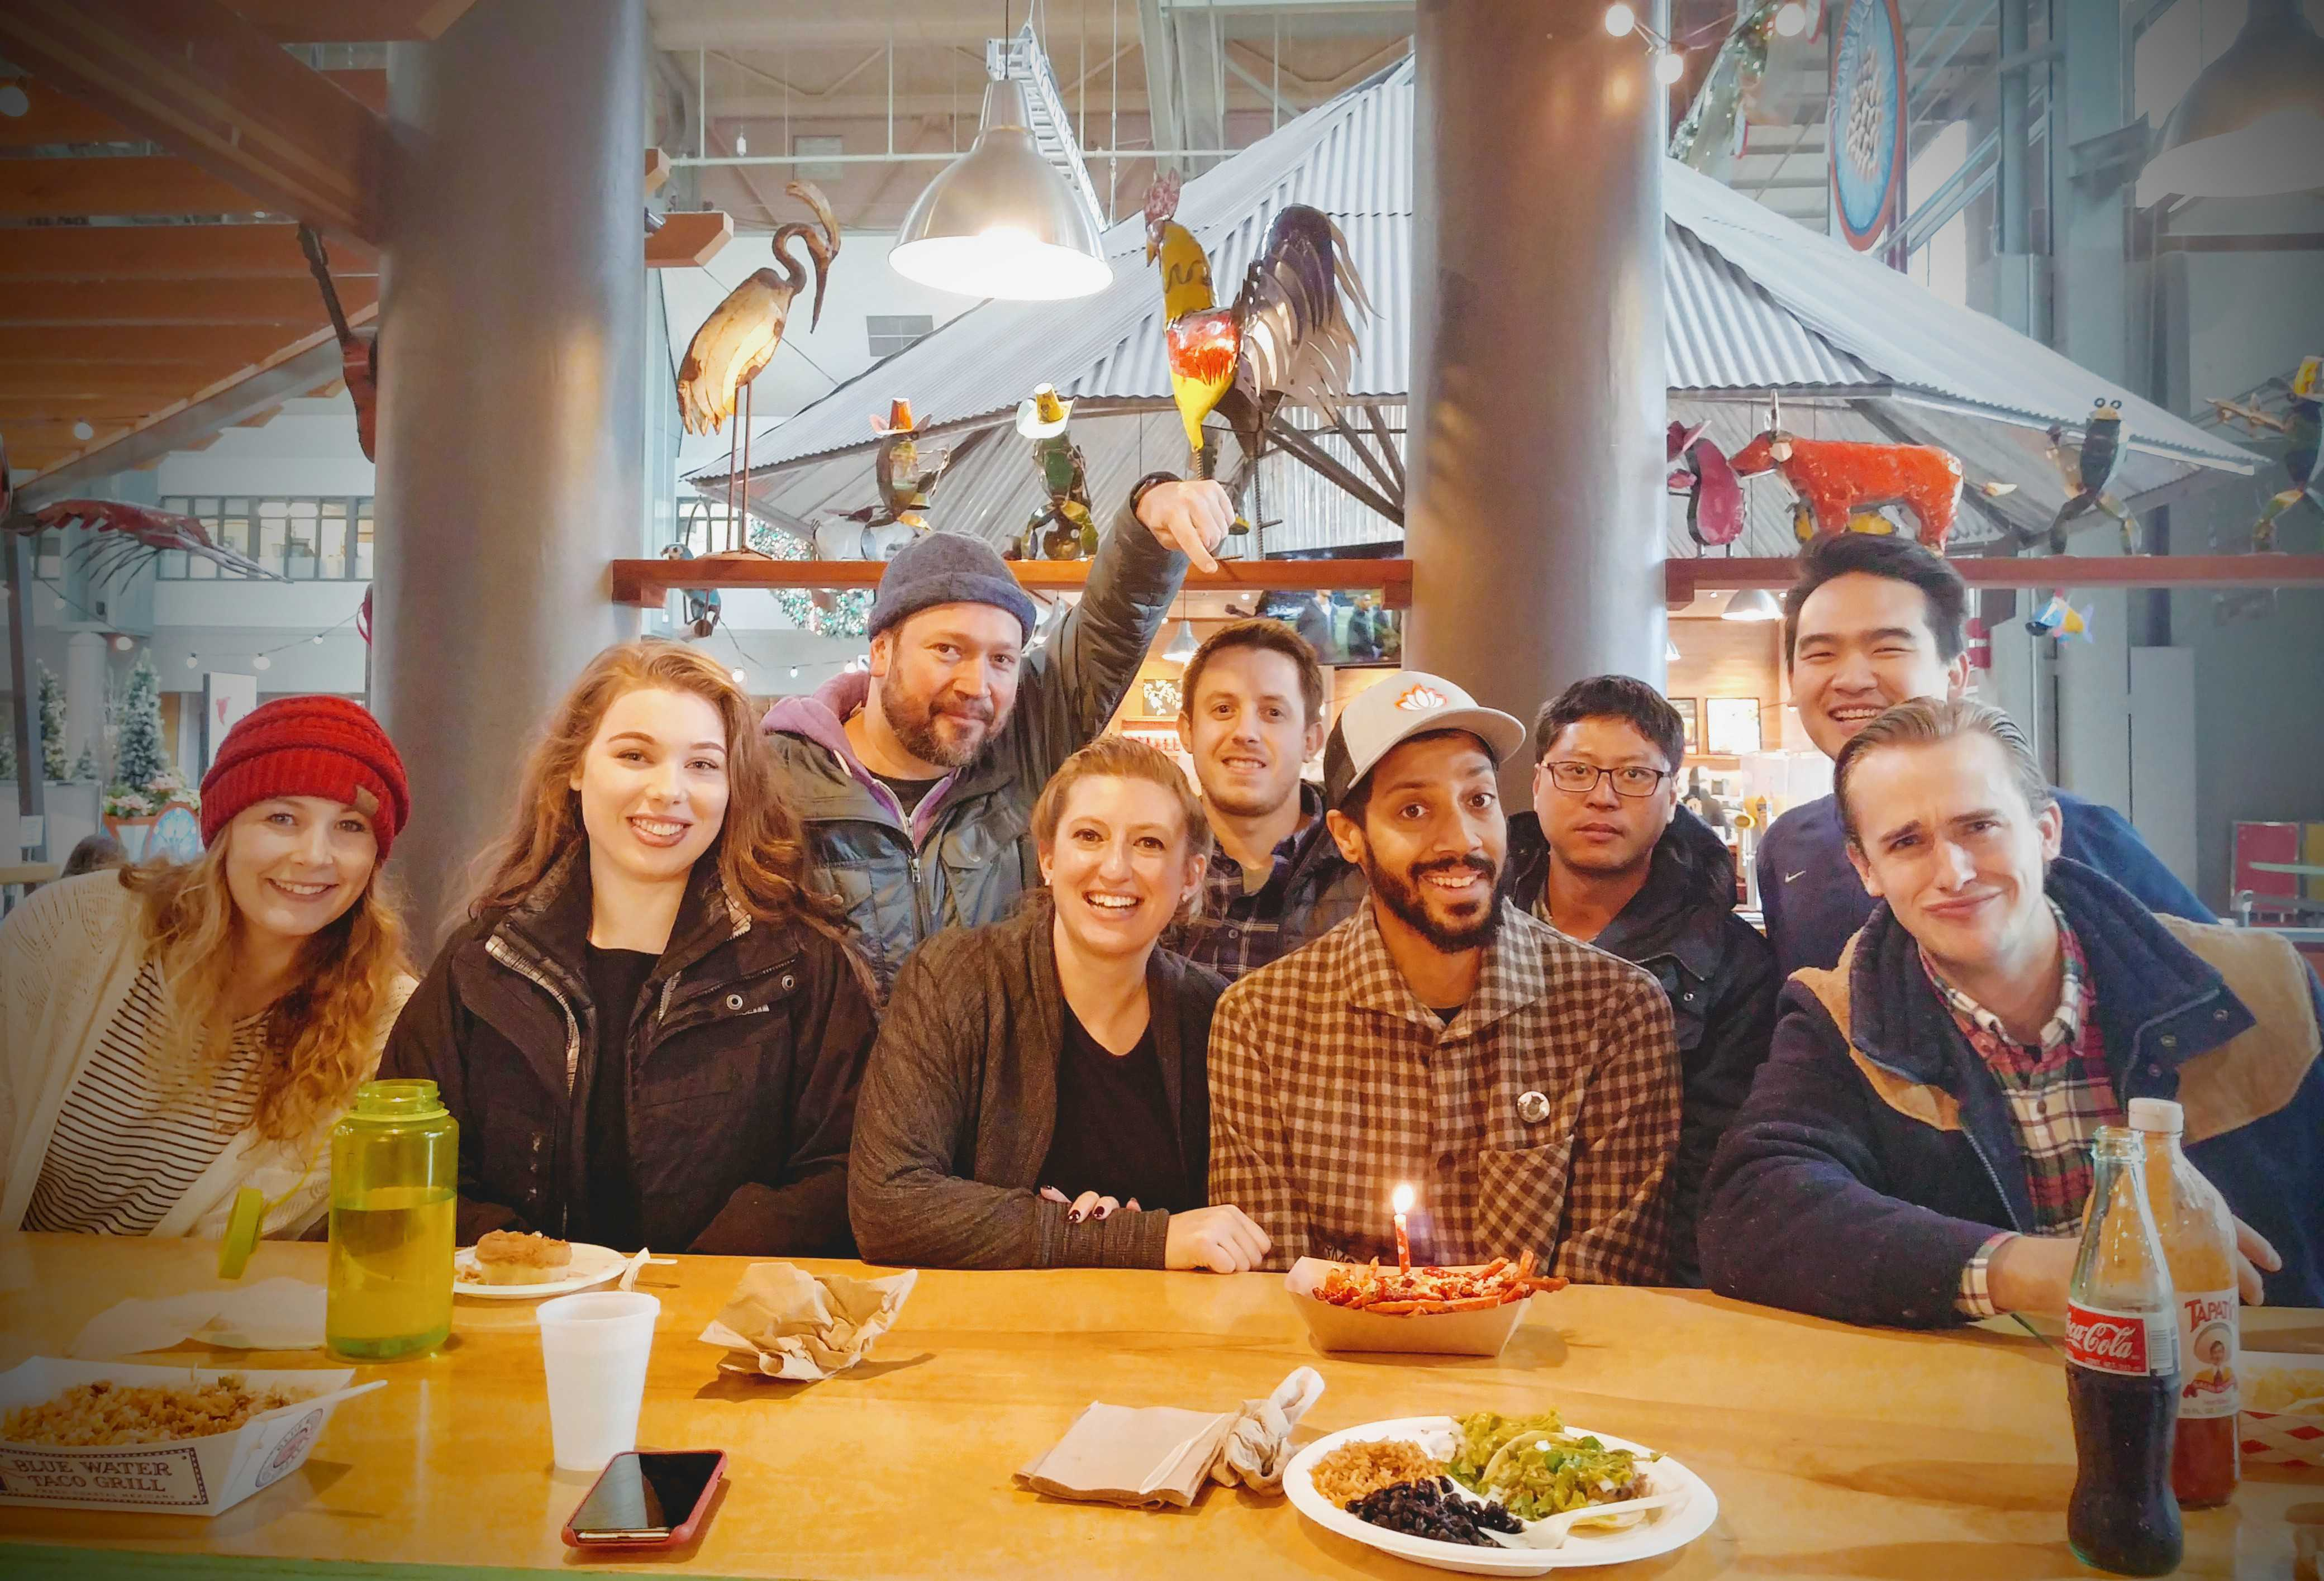 Tyler and work friends celebrating his first work anniversary with a candle in some fries.